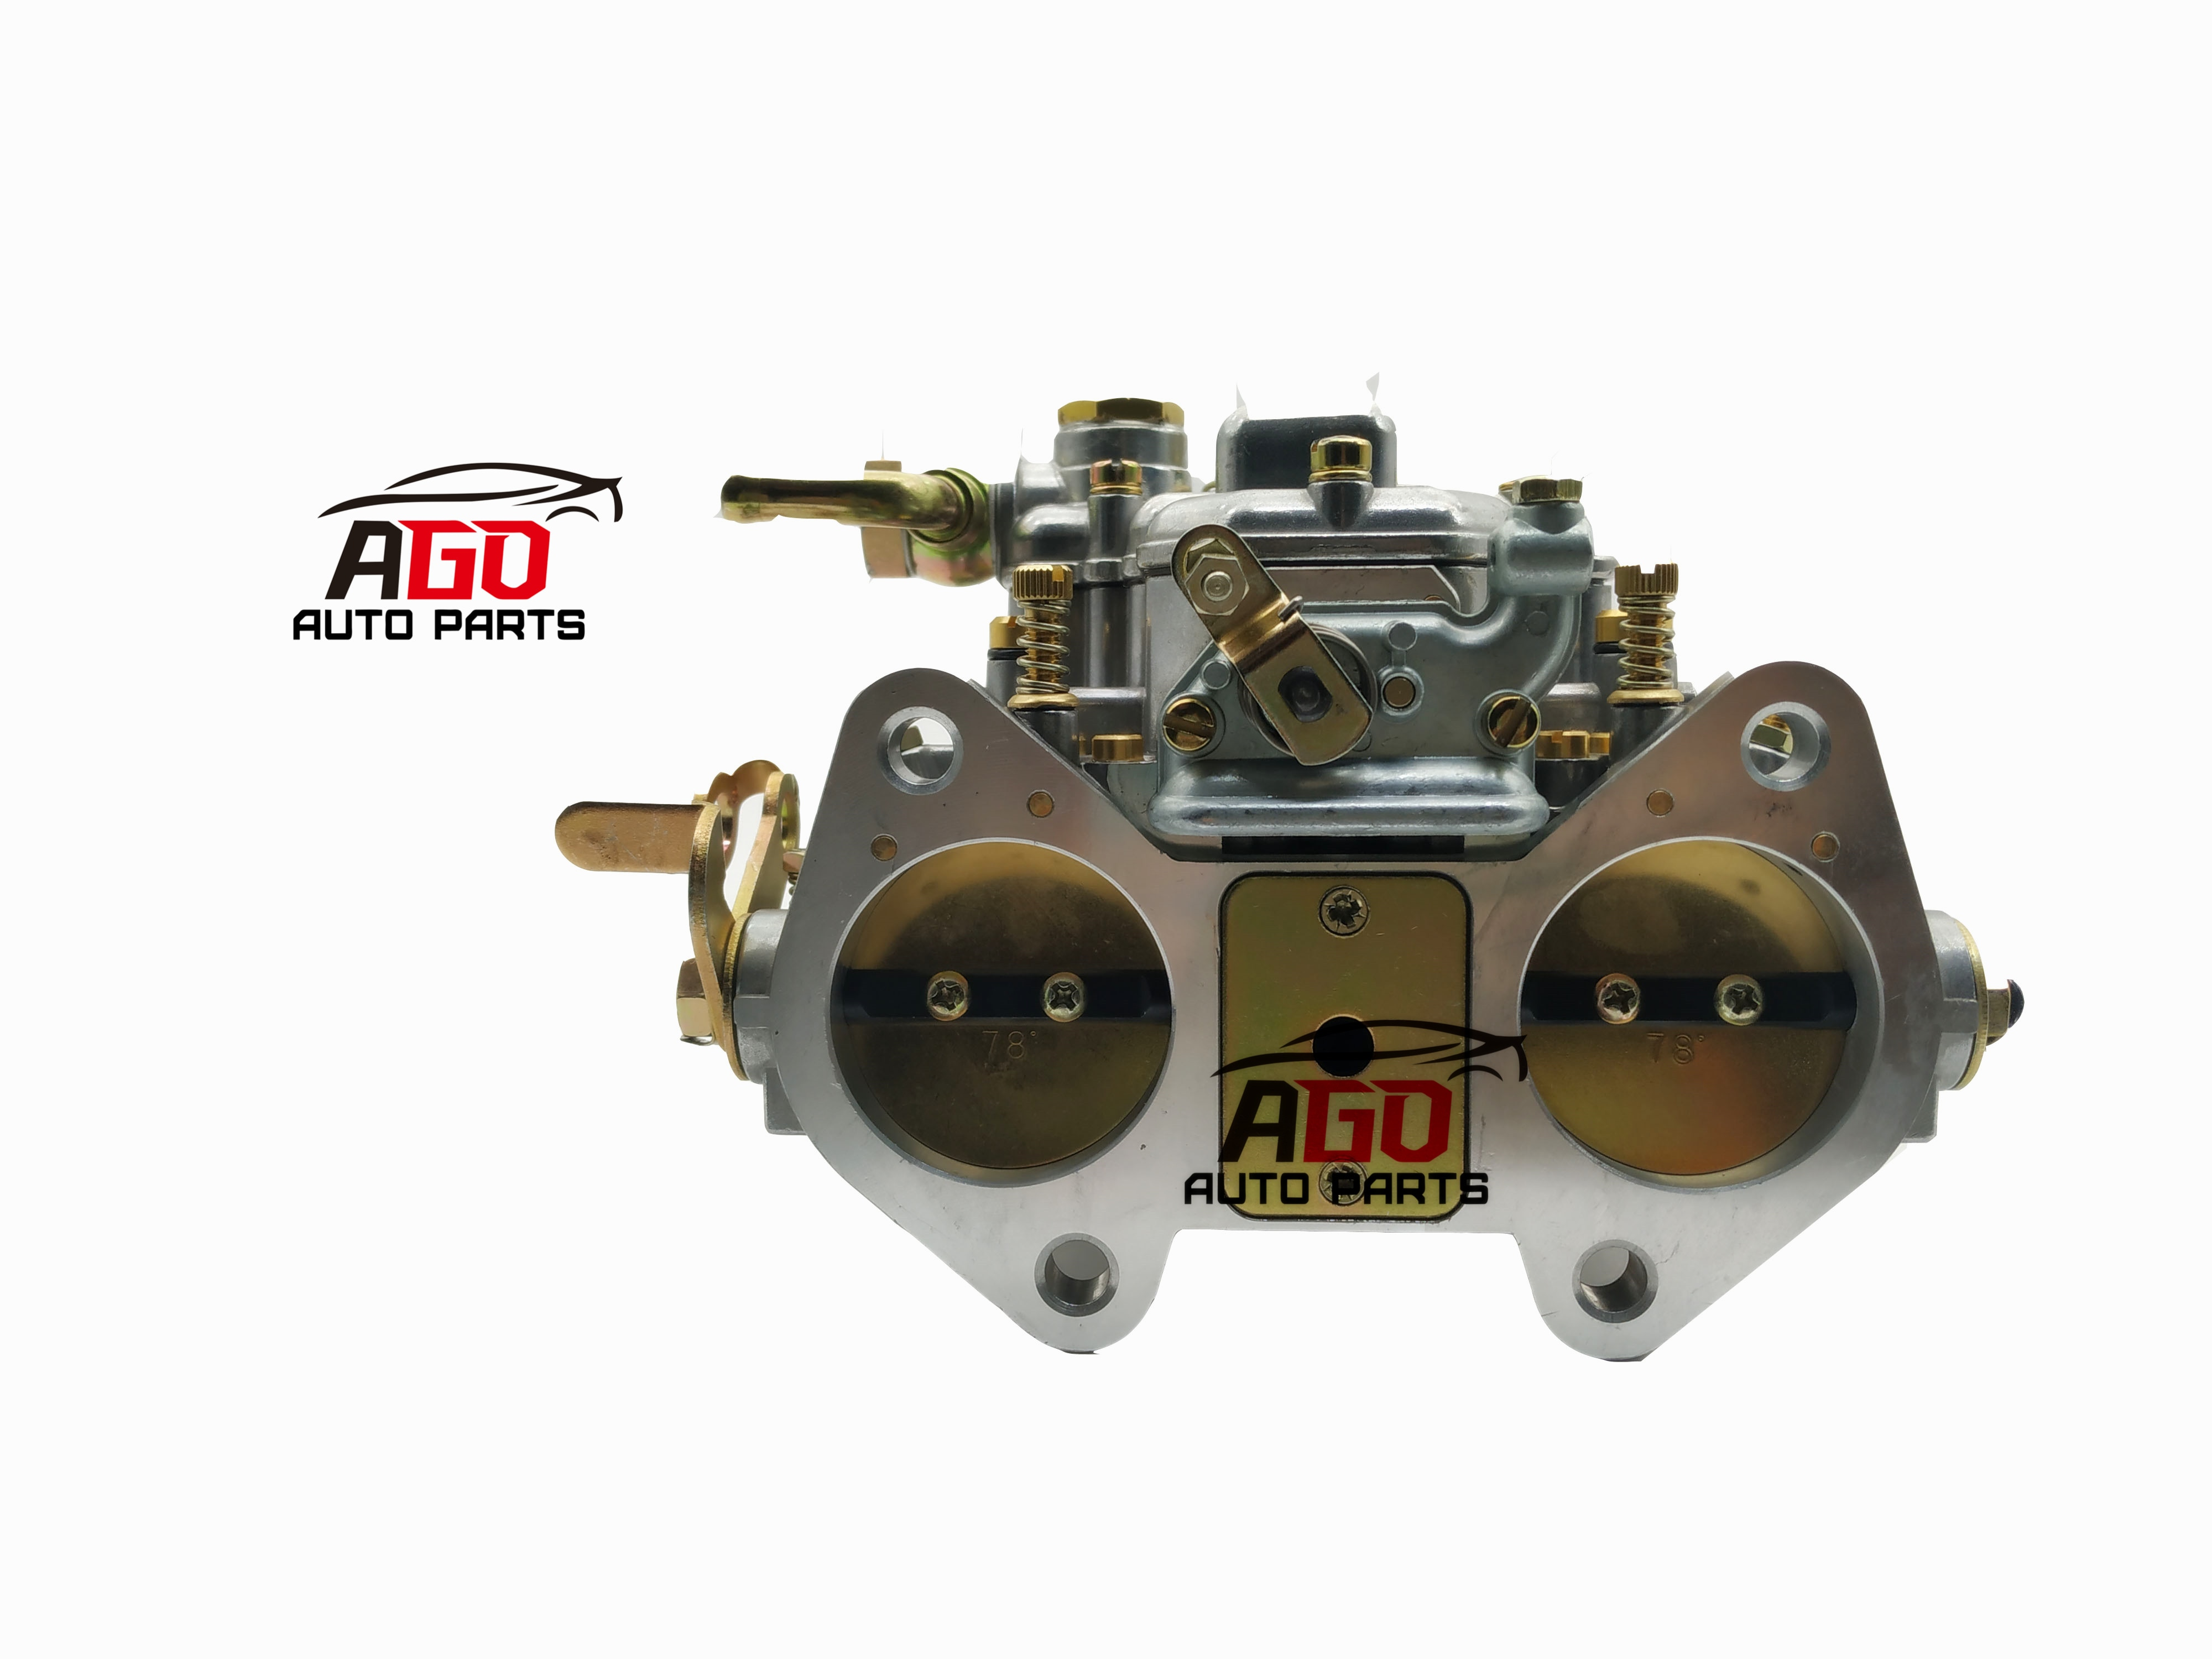 AGO BRAND New CARBURETOR FOR WEBER 48mm Twin Choke 4 Cyl 6 Cyl or V8 Engines 19630.007  - buy with discount